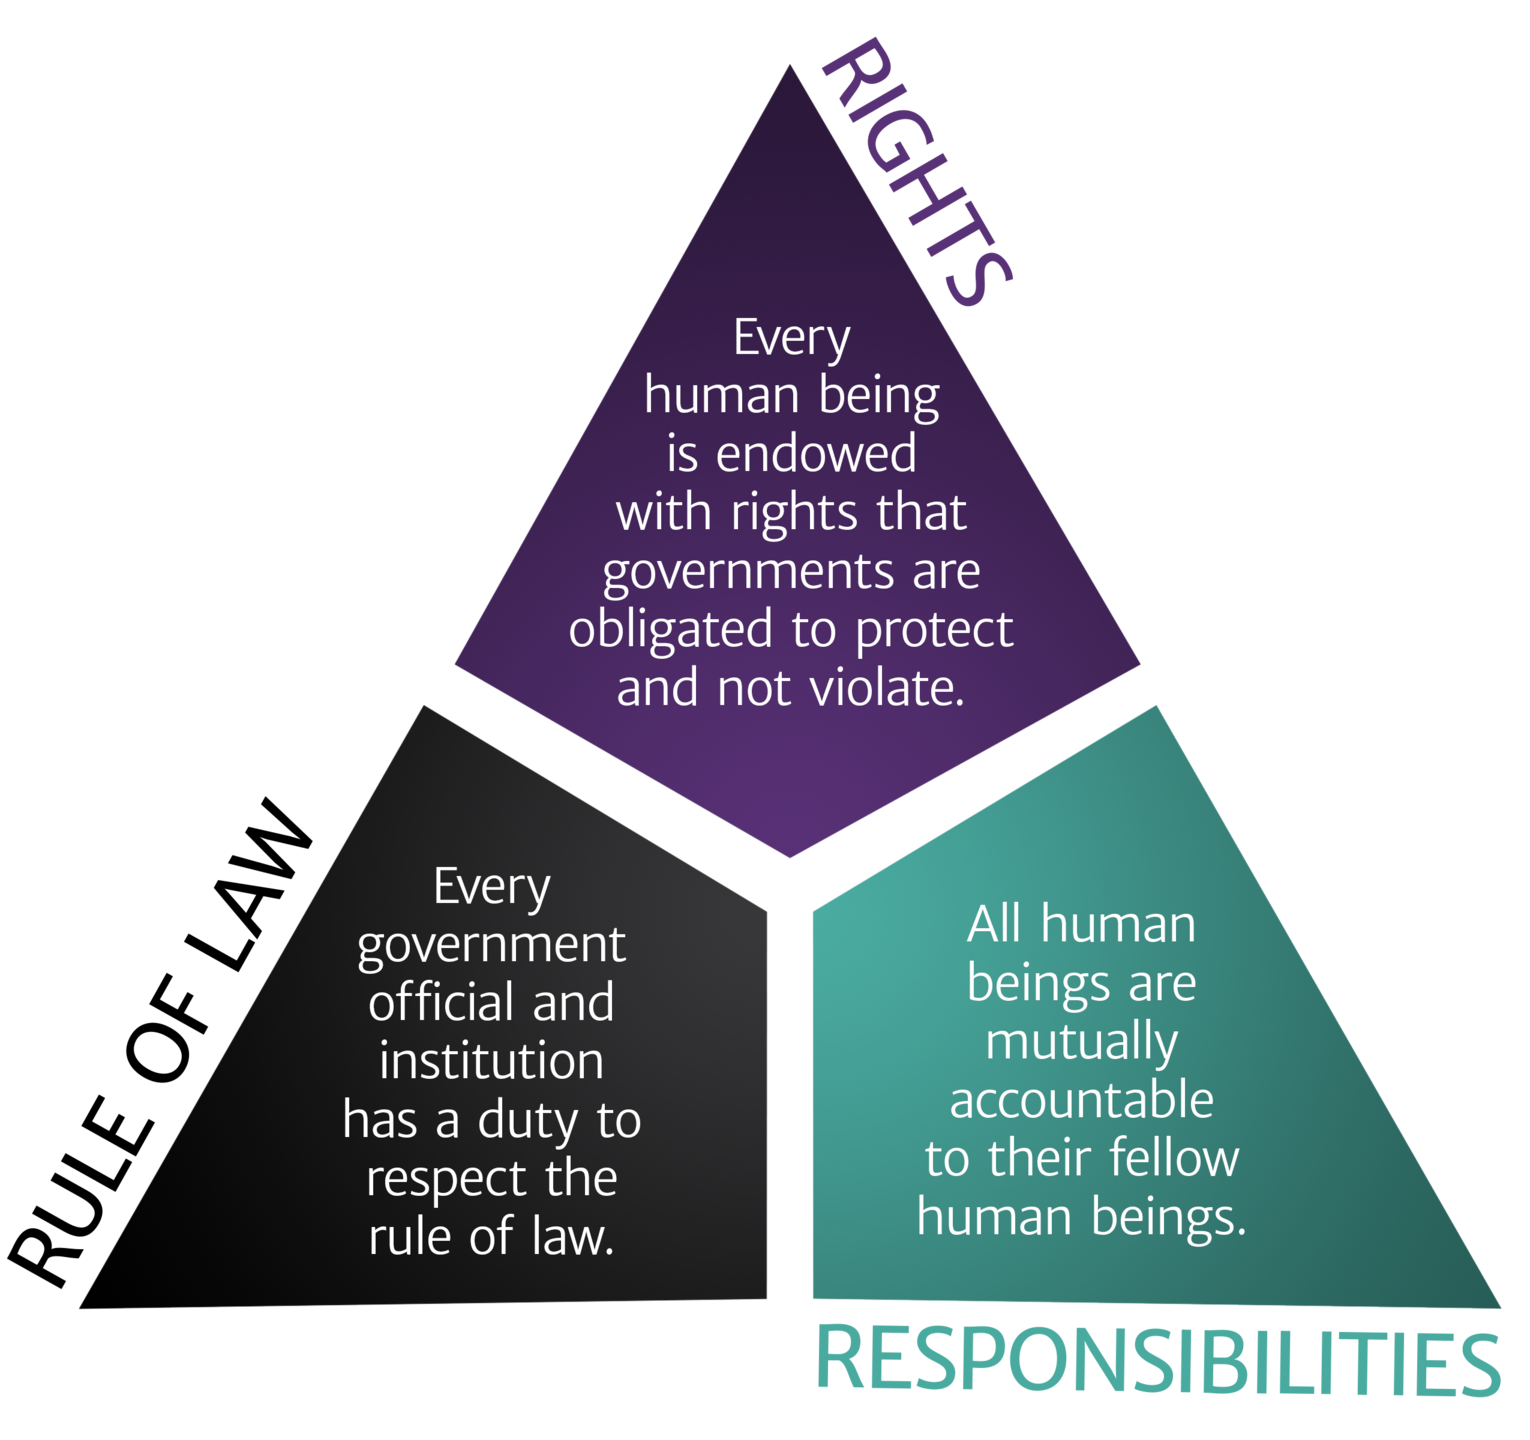 Principles of Ethical Government triangle